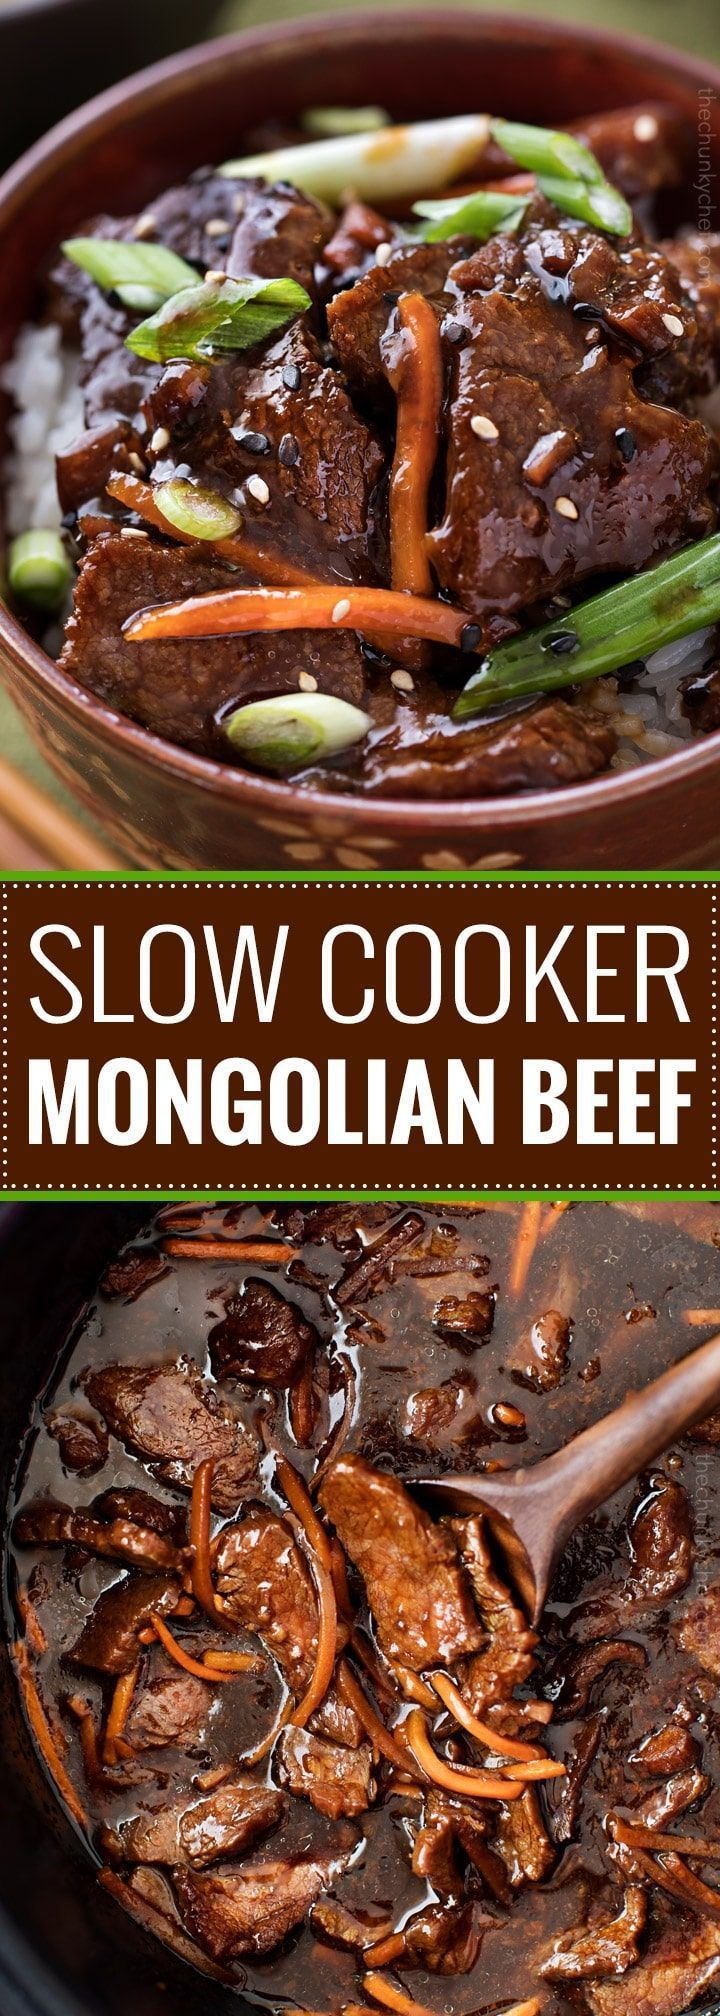 Photo of Easy Slow Cooker Mongolian Beef